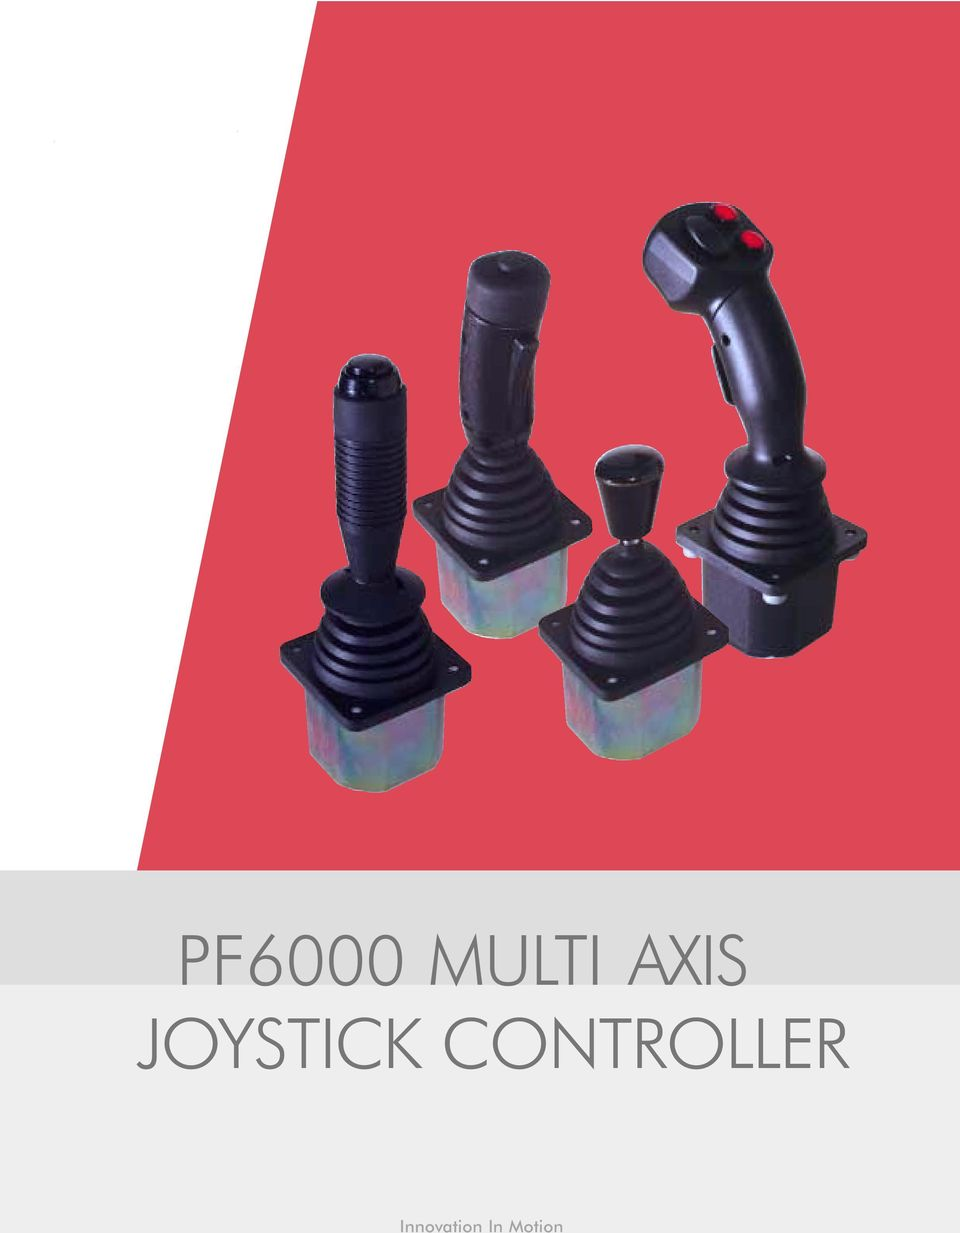 Pf6000 Multi Axis Joystick Controller Innovation In Motion Pdf 2 Wiring Diagrams The Rugged Is Designed For Demanding Operator Control Applications Off Highway Vehicles And Other